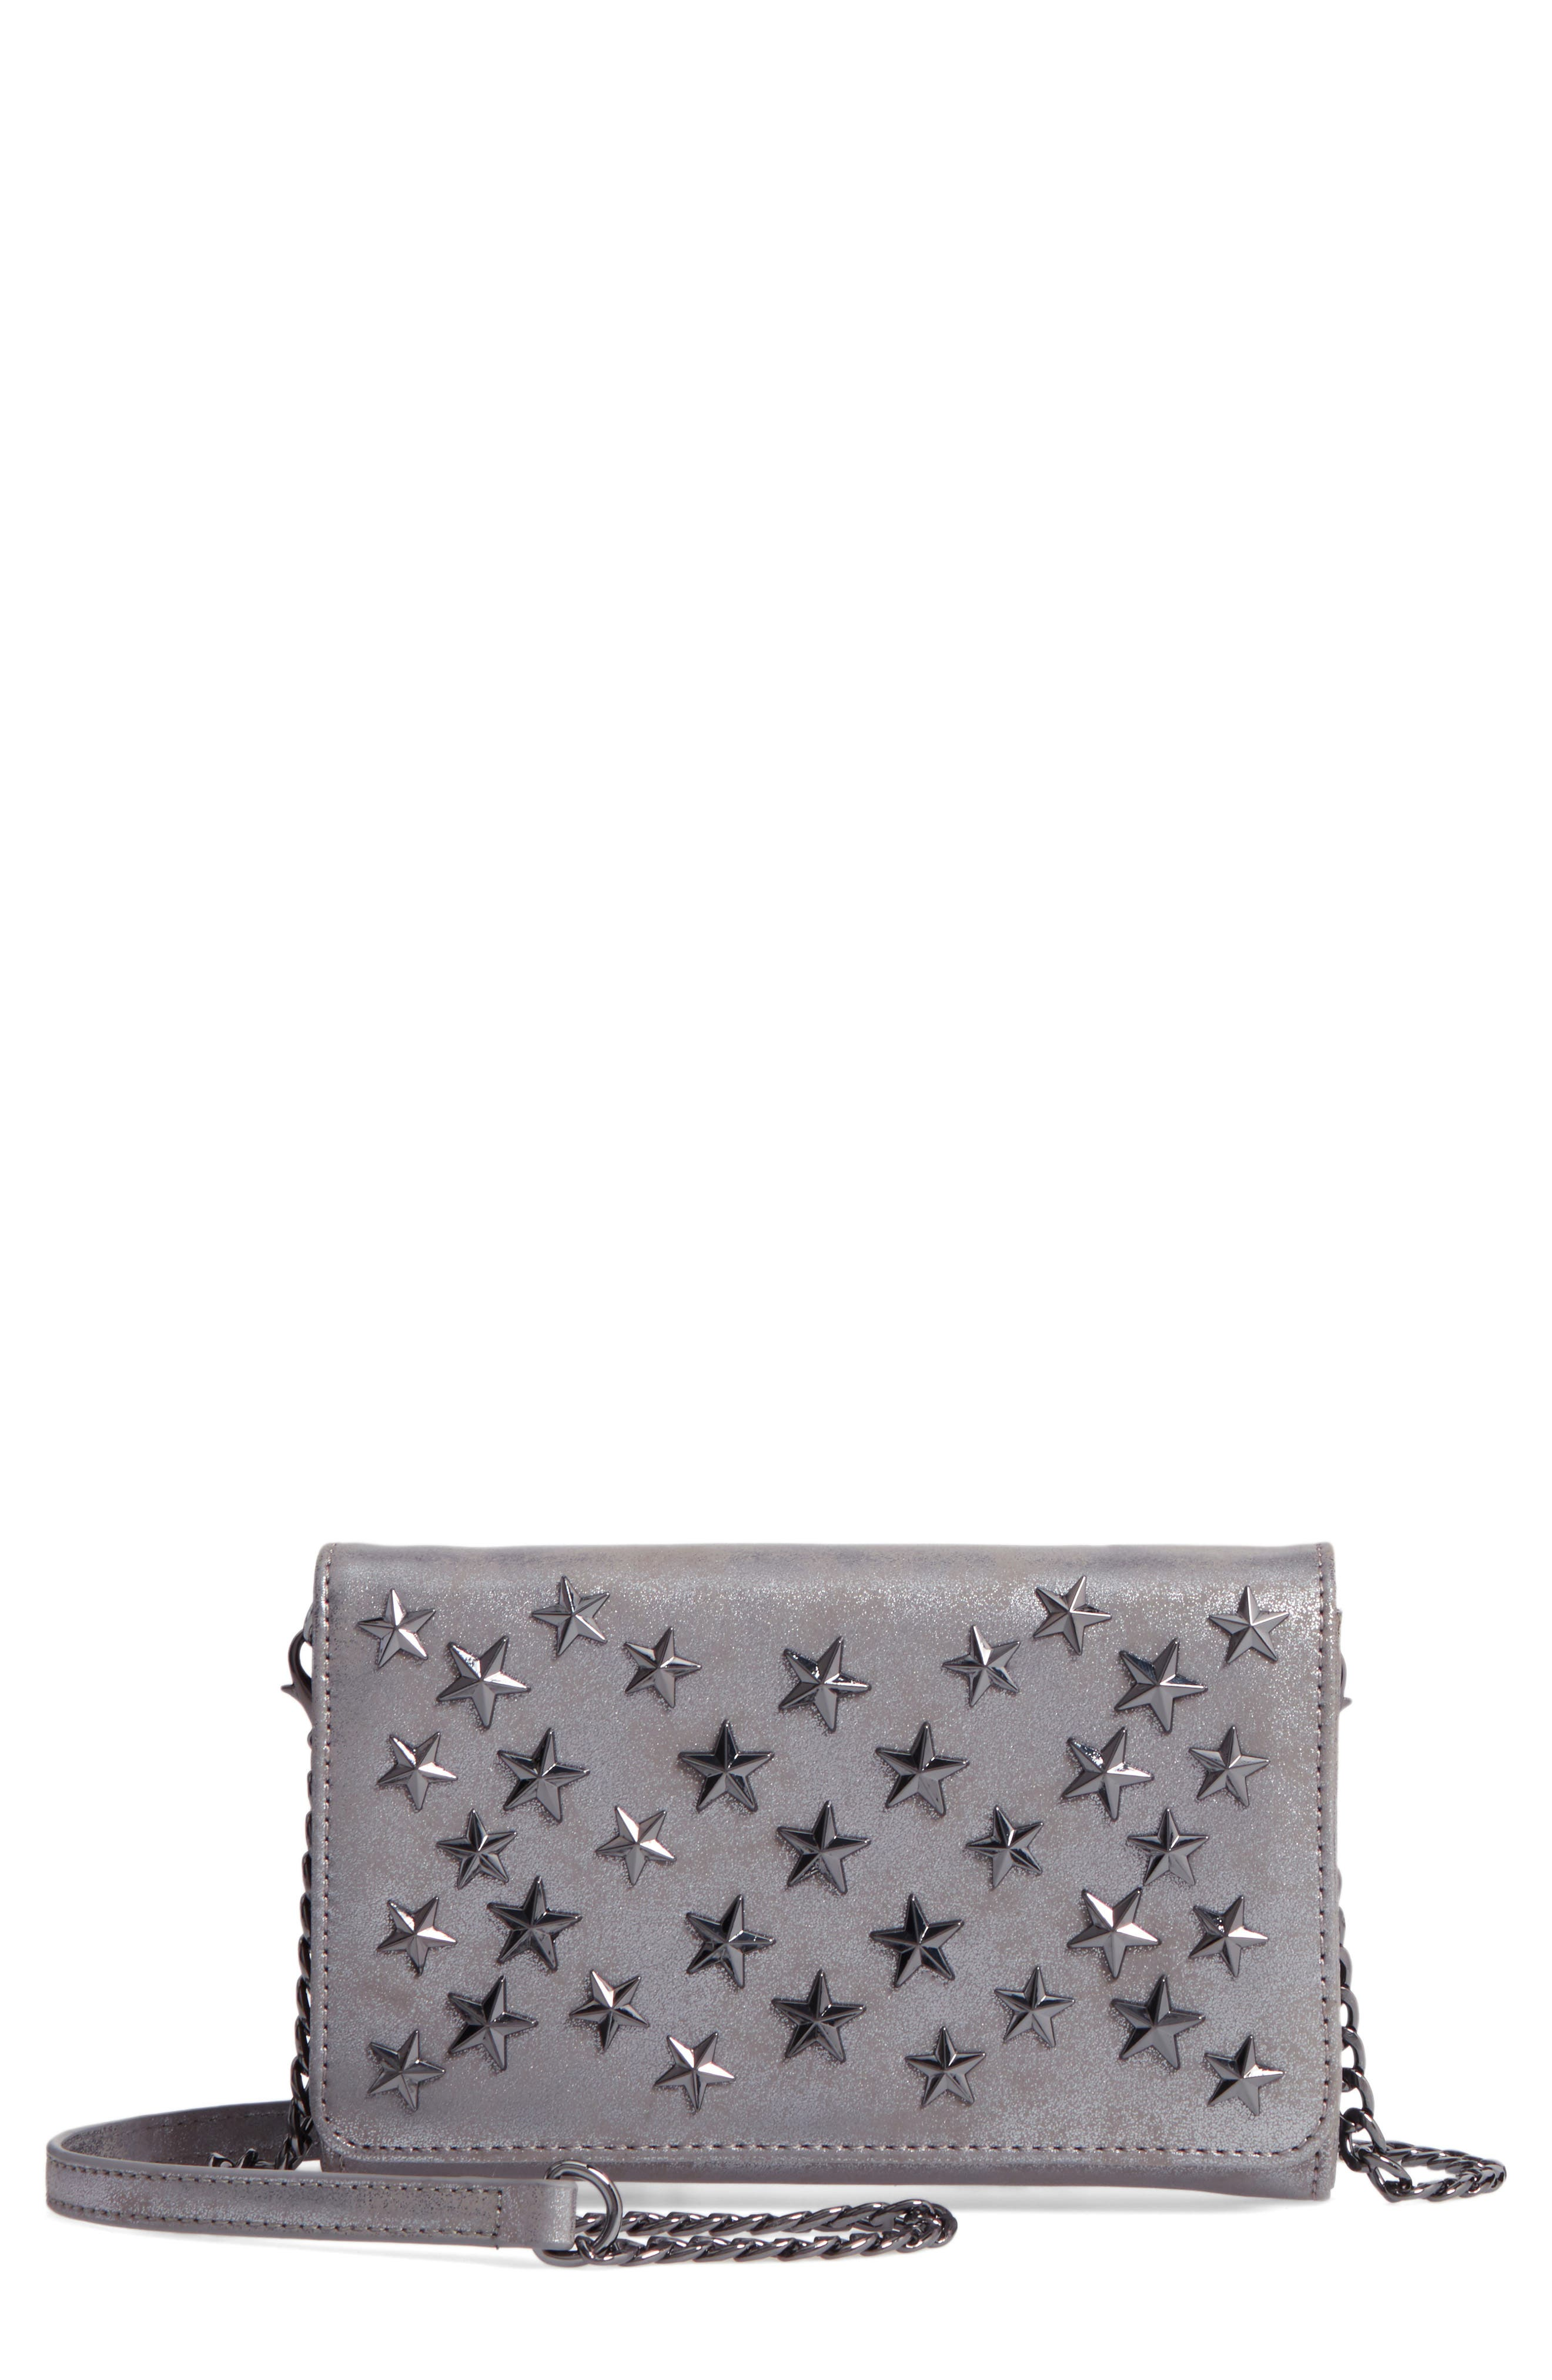 Alternate Image 1 Selected - Chelsea28 Alexa Stars Faux Leather Wallet on a Chain